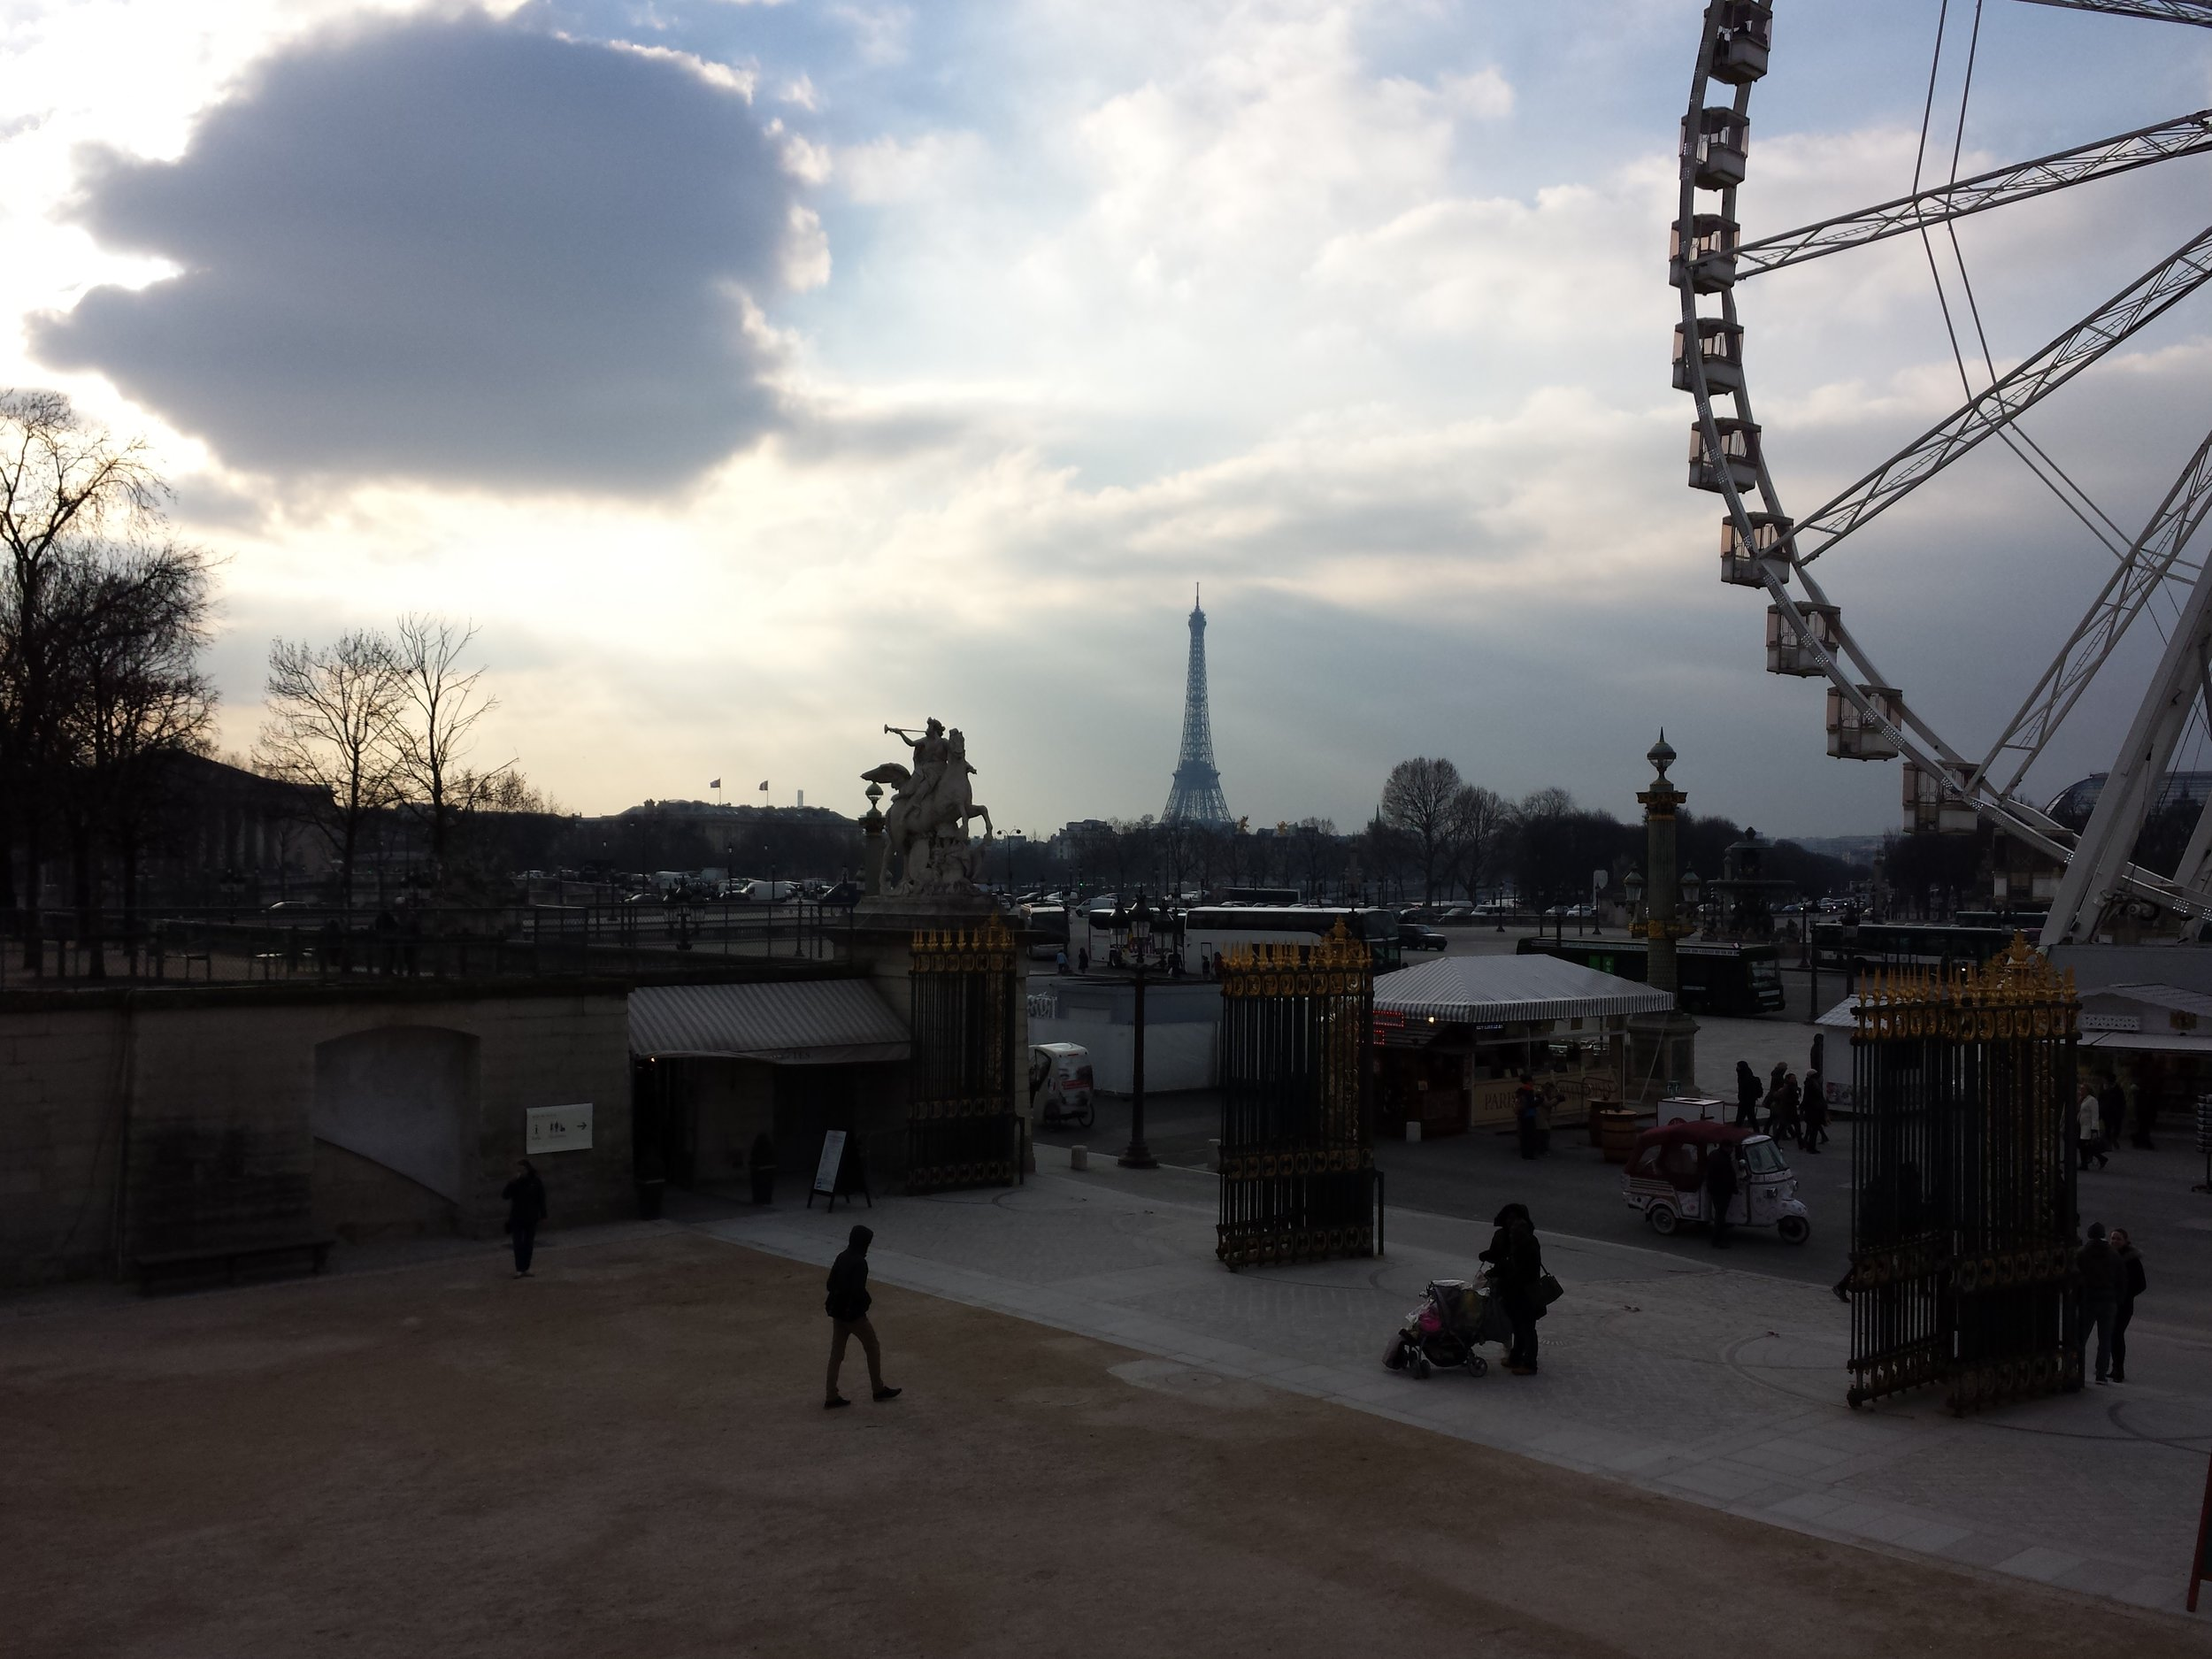 From the gardens past the Louvre, here's a view of the Eiffel Tower